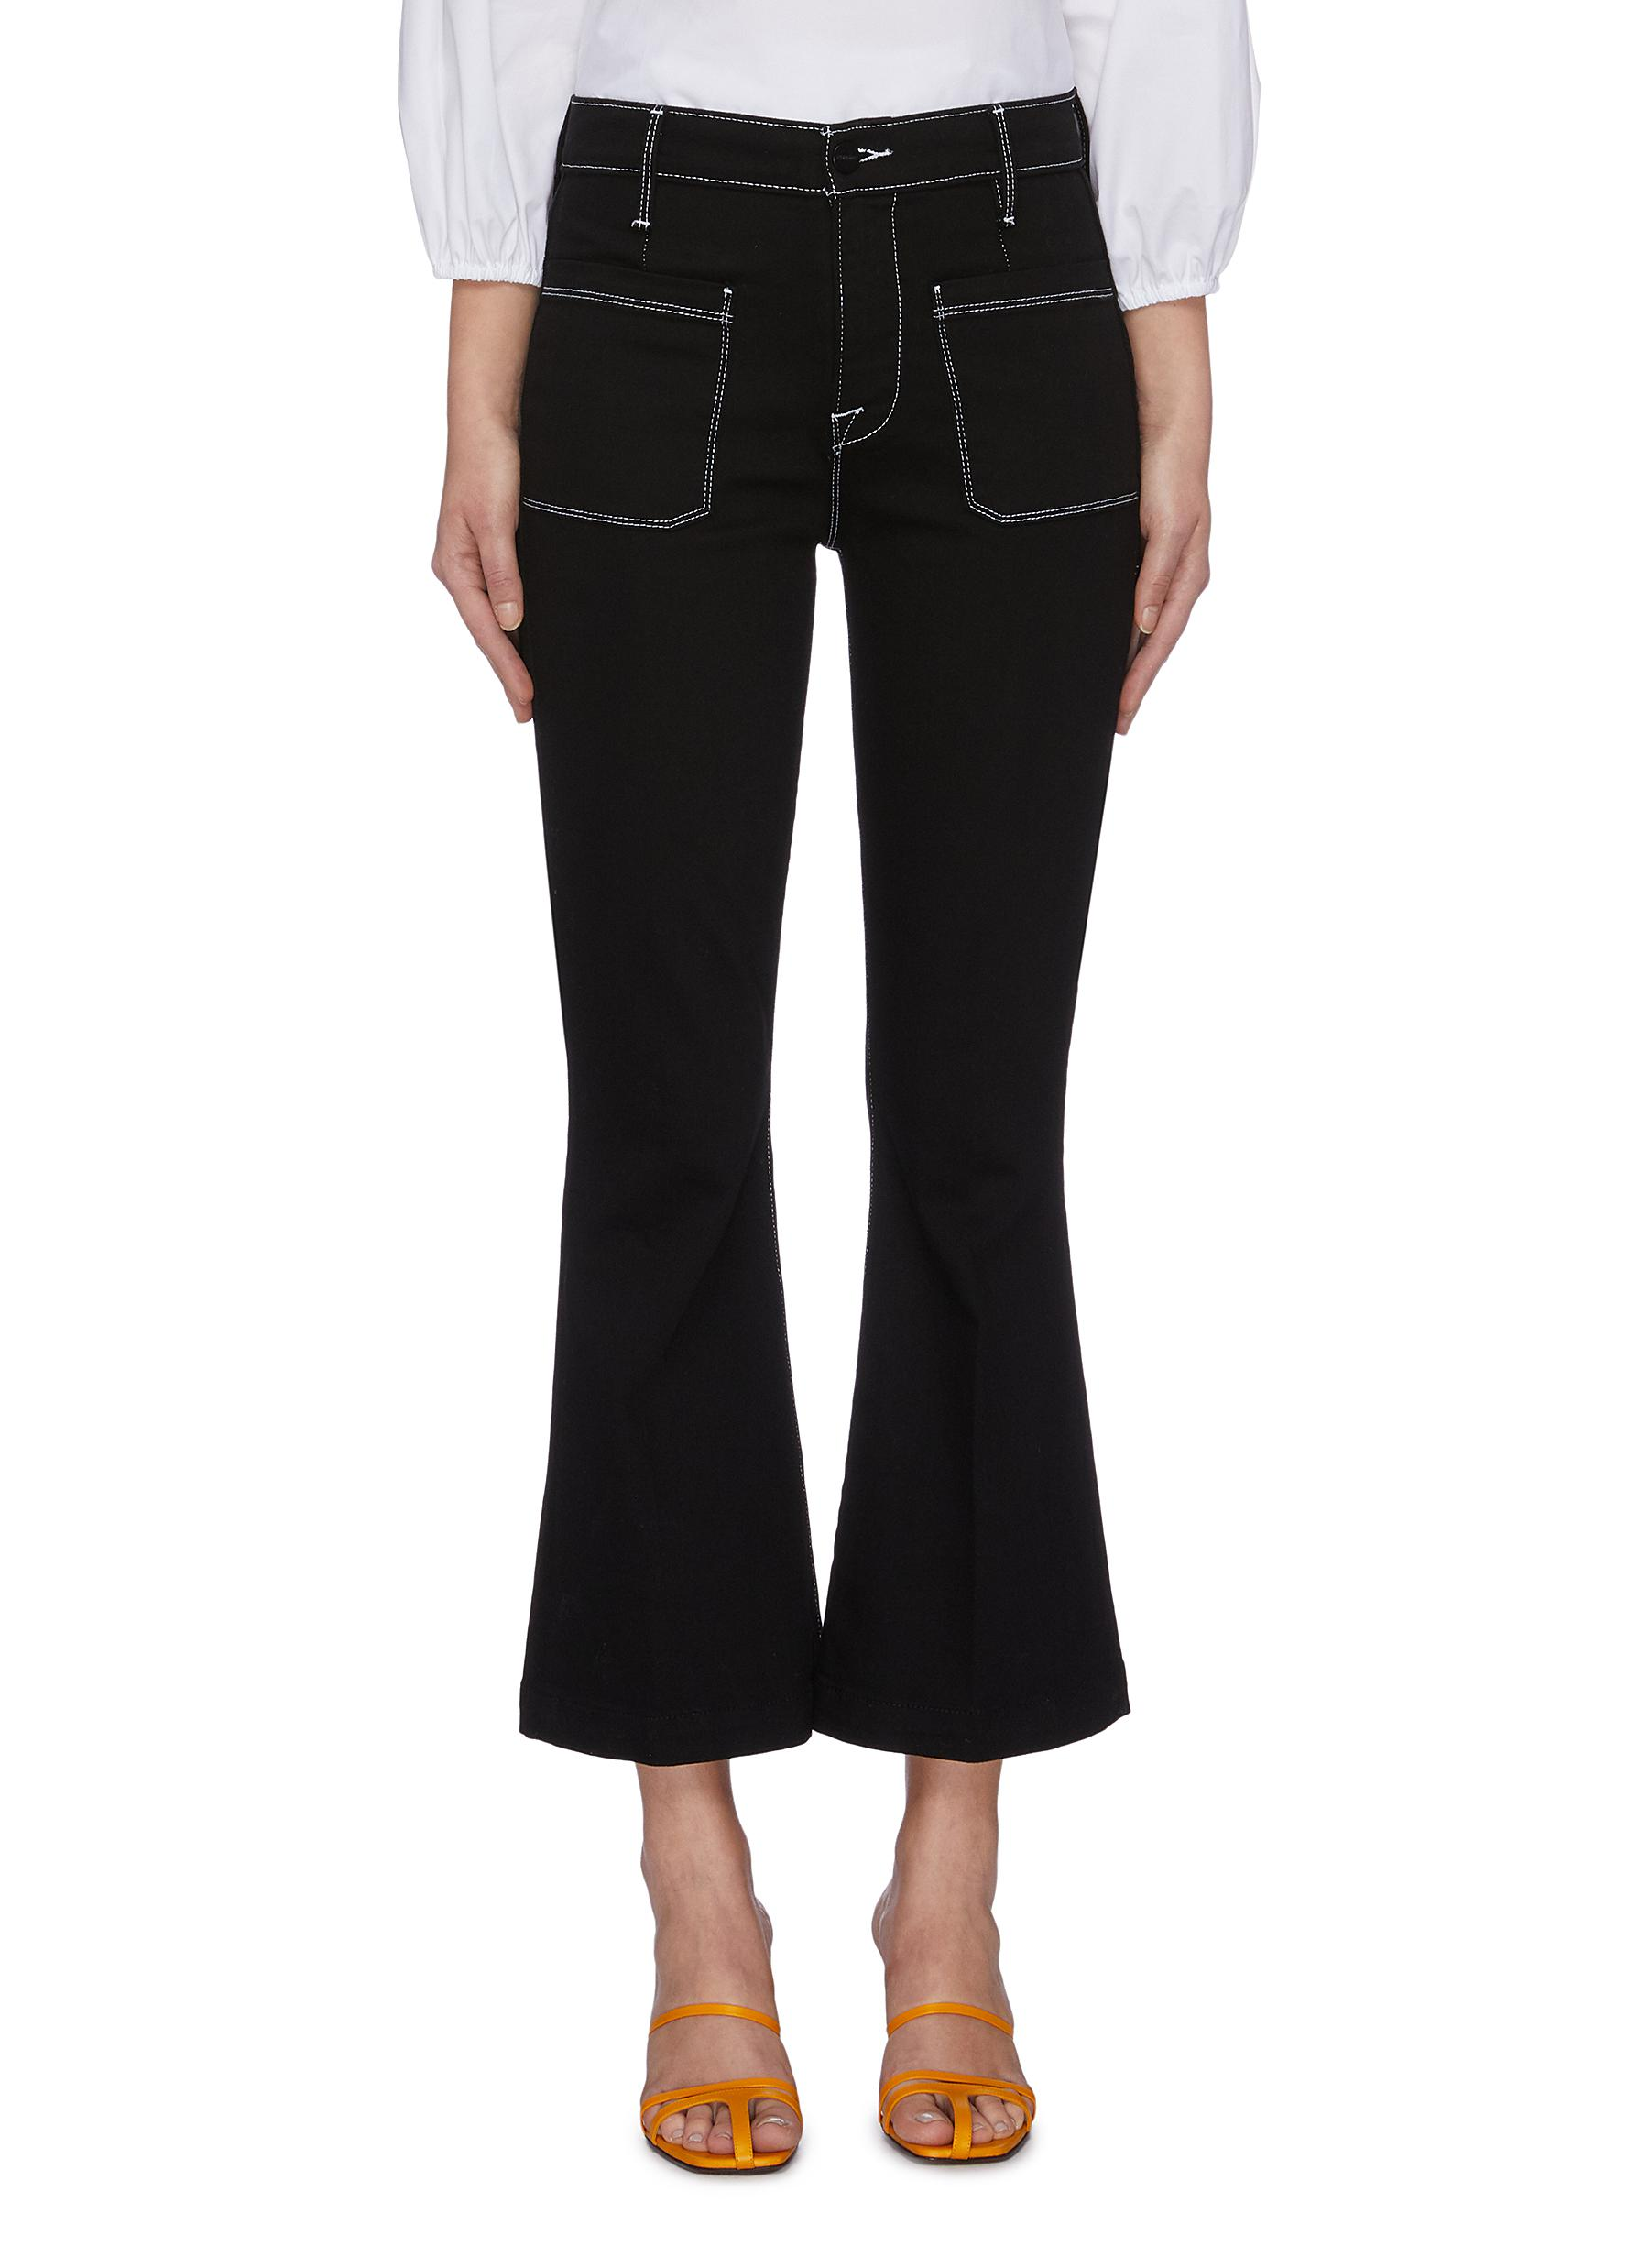 Bardot contrast stitching flared jeans by Frame Denim